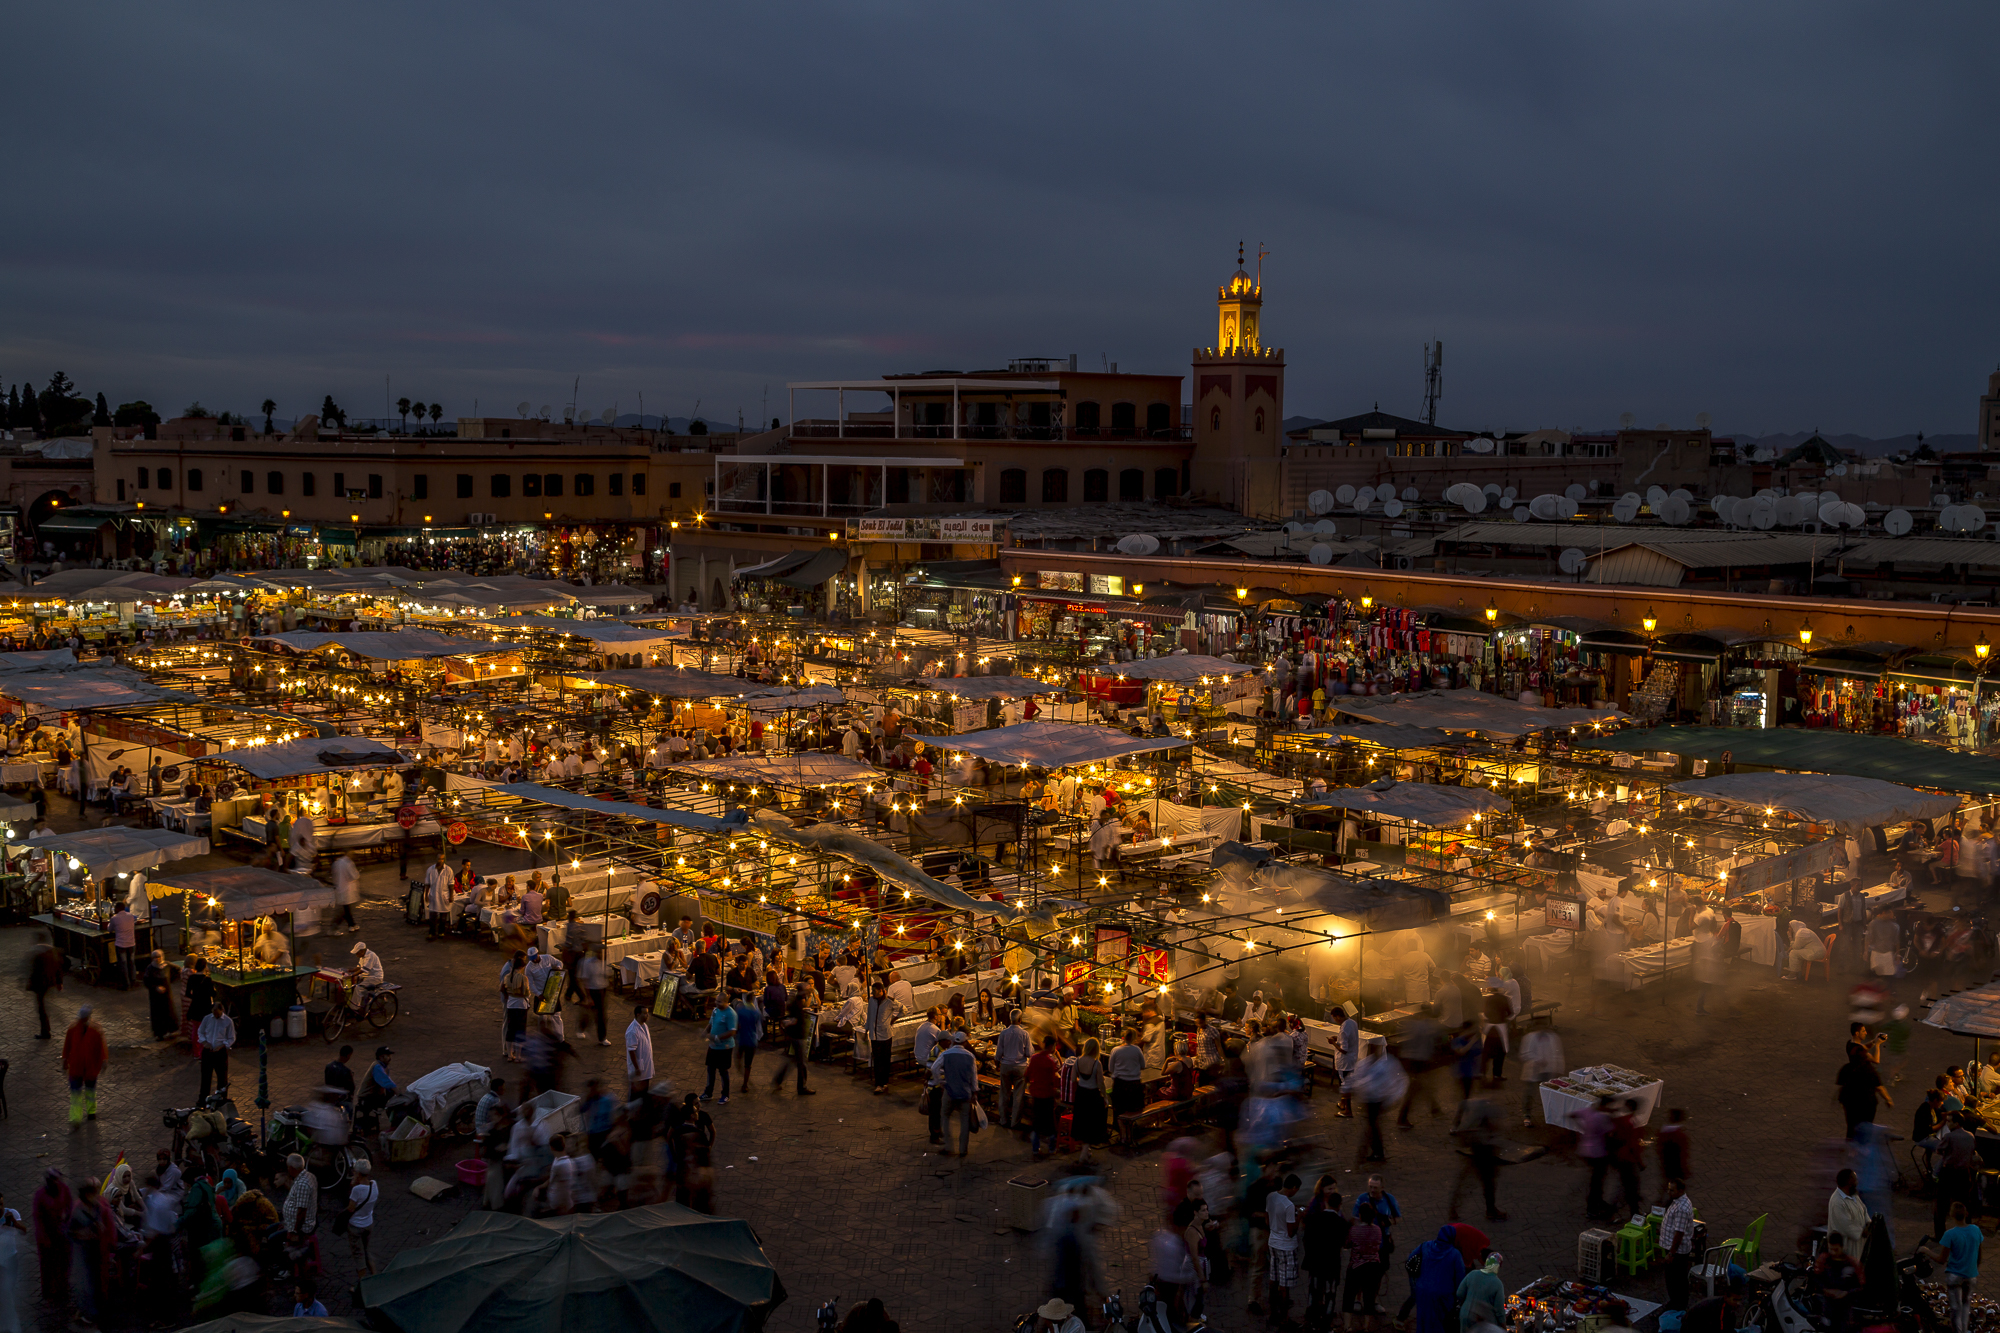 marrakech-night-8.jpg